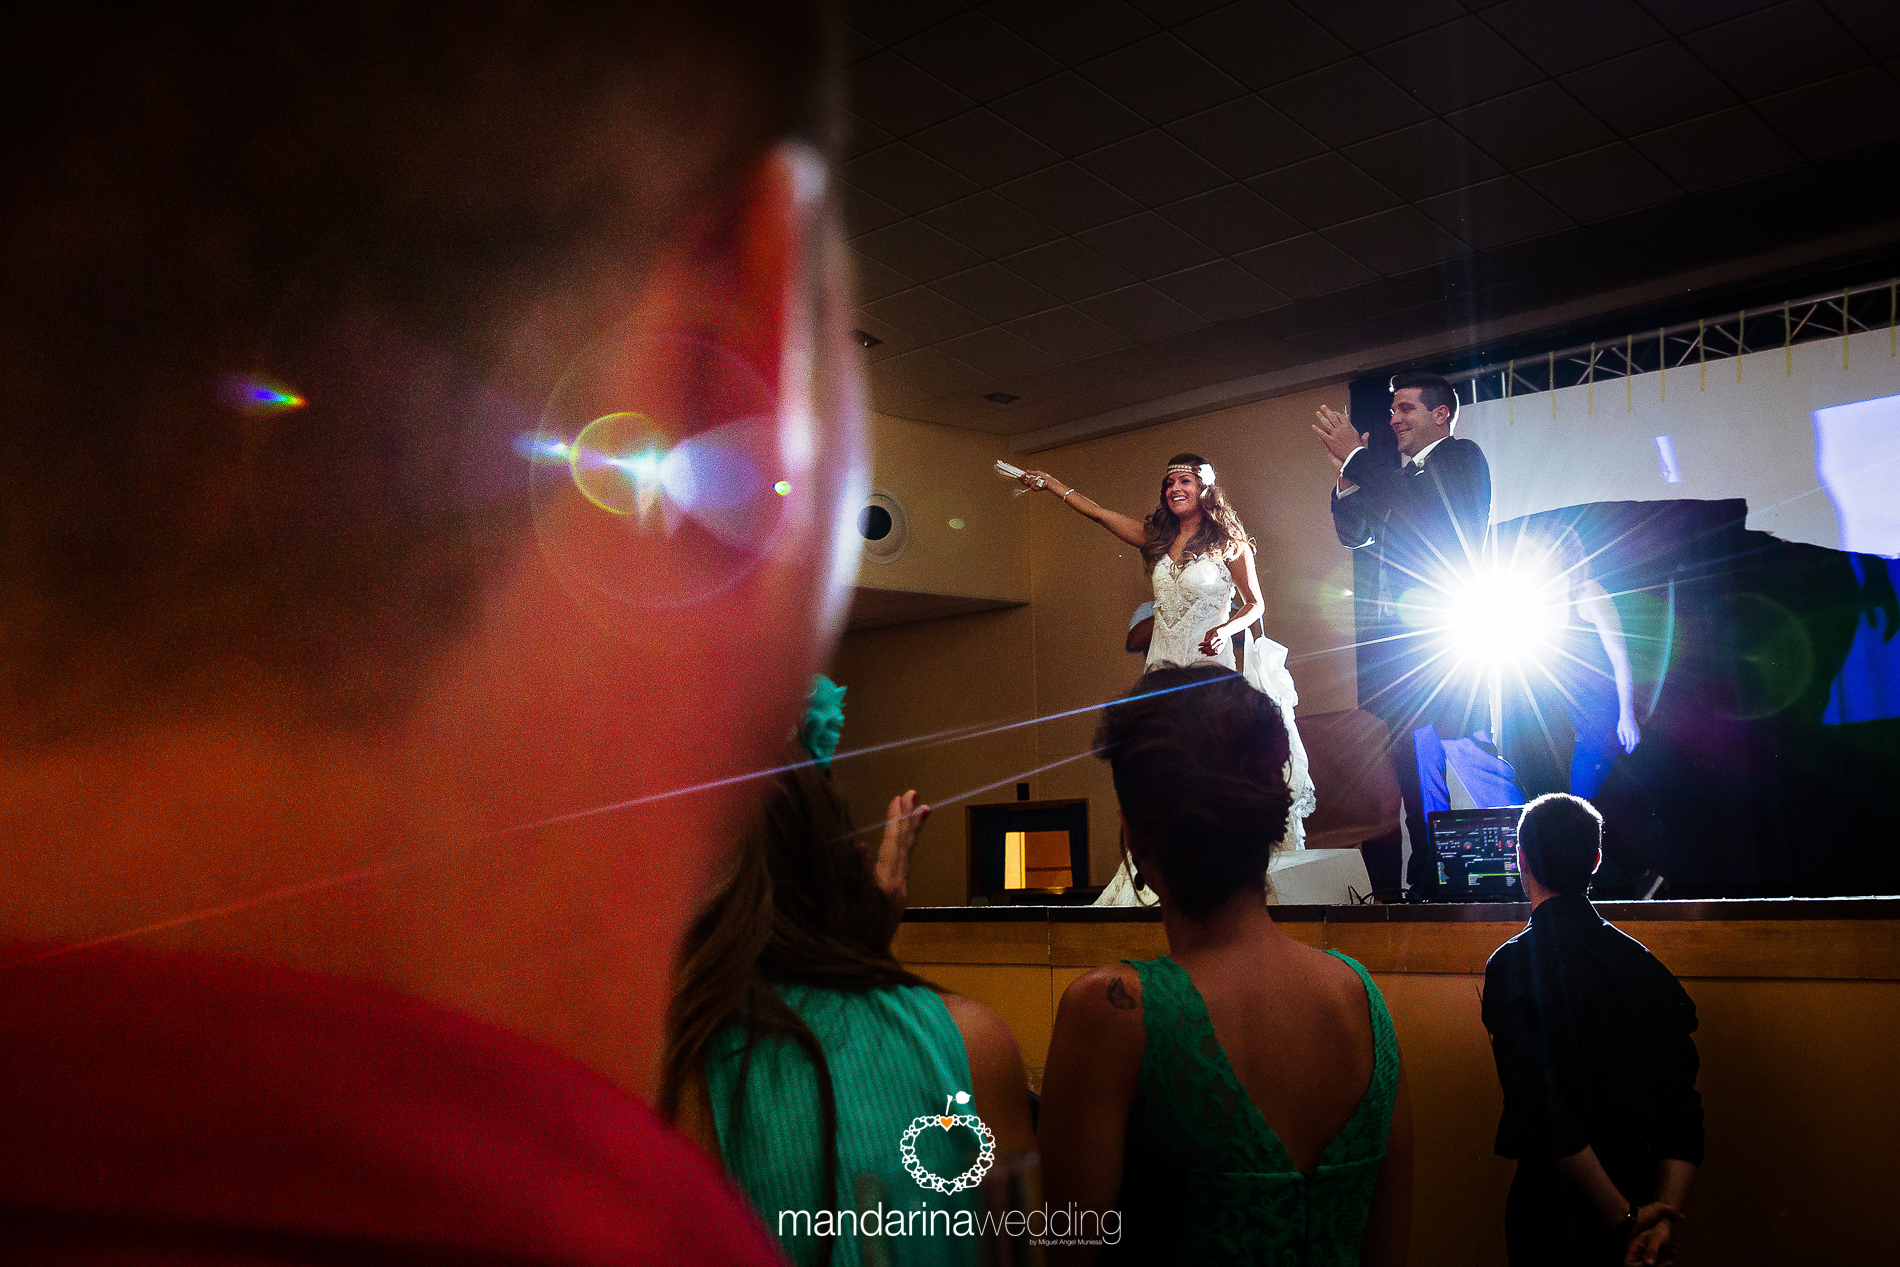 mandarina wedding_27